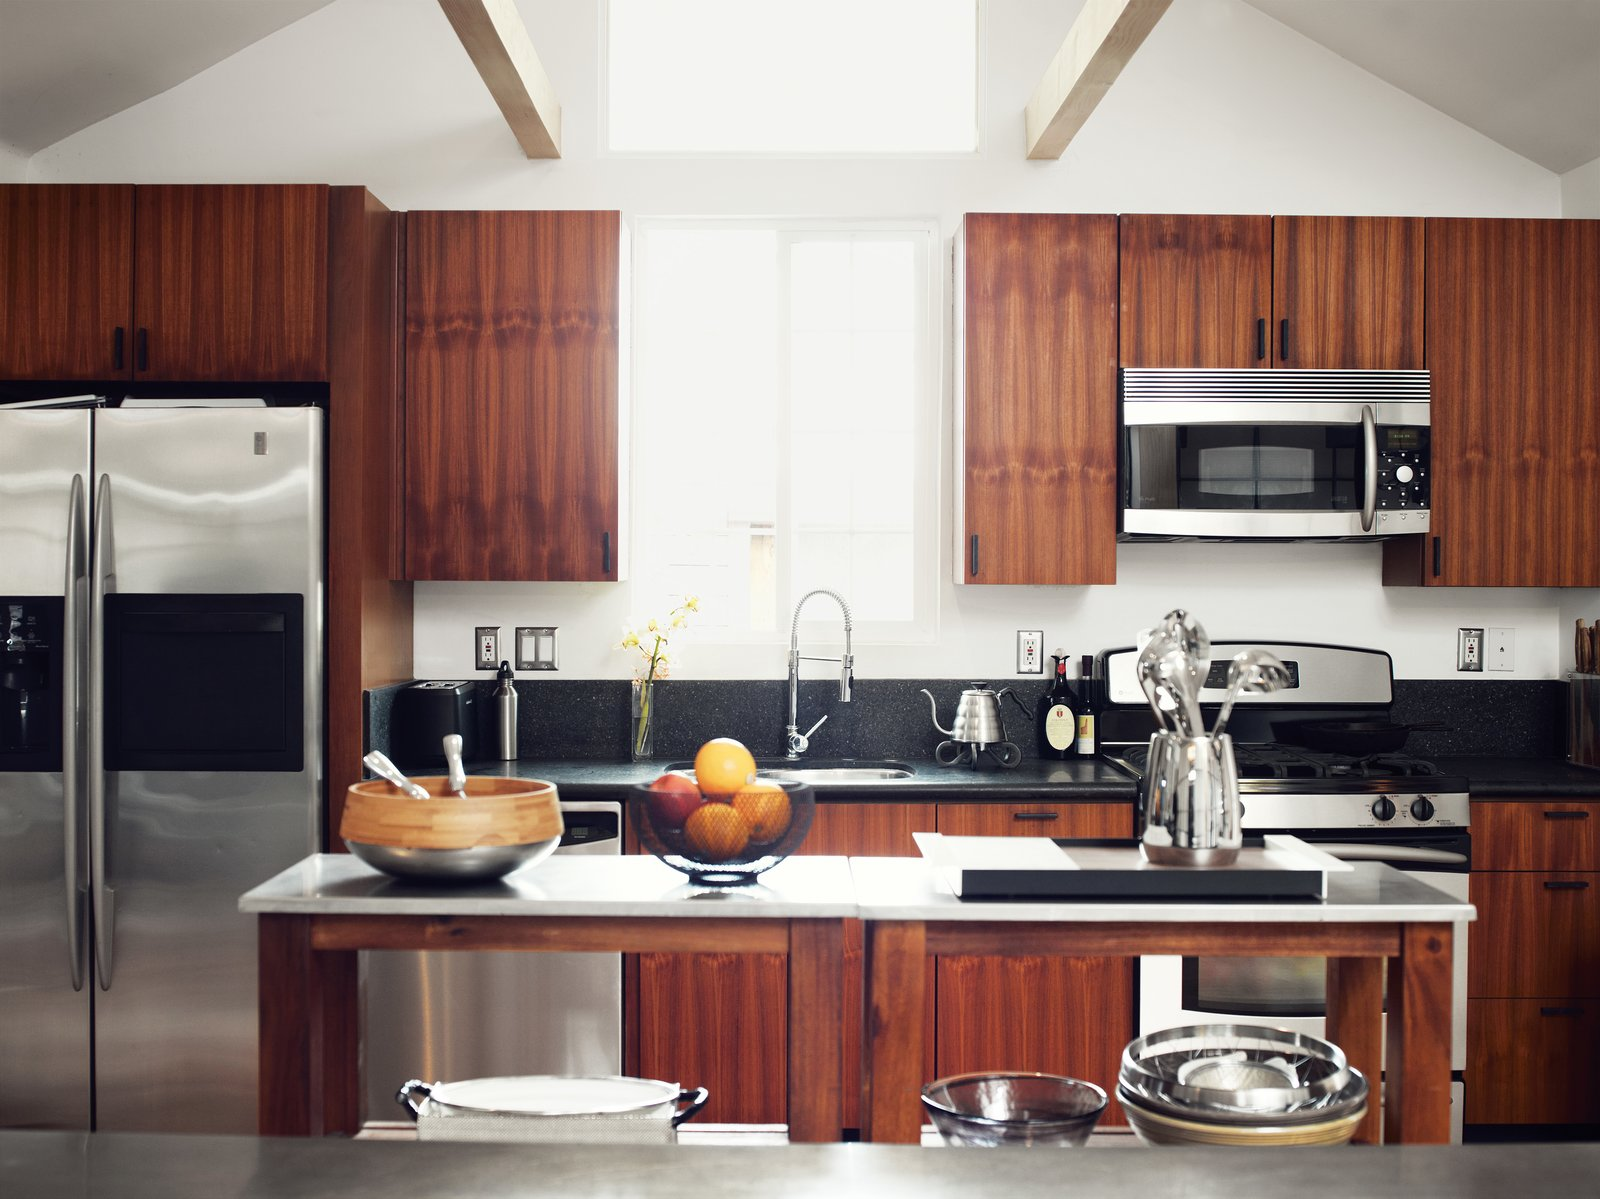 He worked with Kartheiser's existing appliances in the kitchen, trading the old cabinetry for new teak. Tagged: Kitchen, Wood Cabinet, Granite Counter, Undermount Sink, Refrigerator, and Microwave. Loft by maria